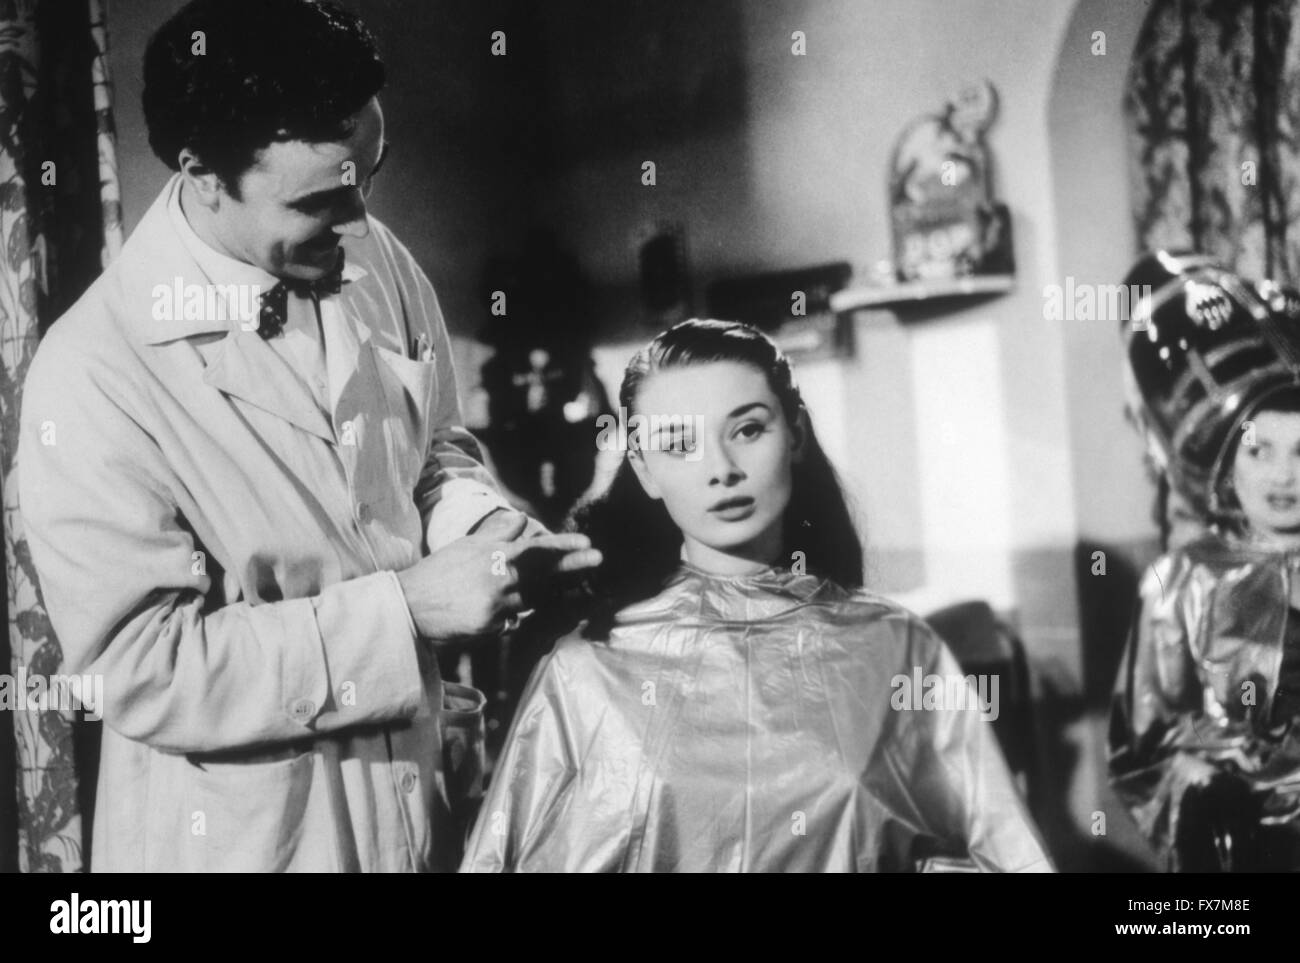 Roman Holiday Year : 1953 USA Director : William Wyler Audrey Hepburn, Paolo Carlini - Stock Image